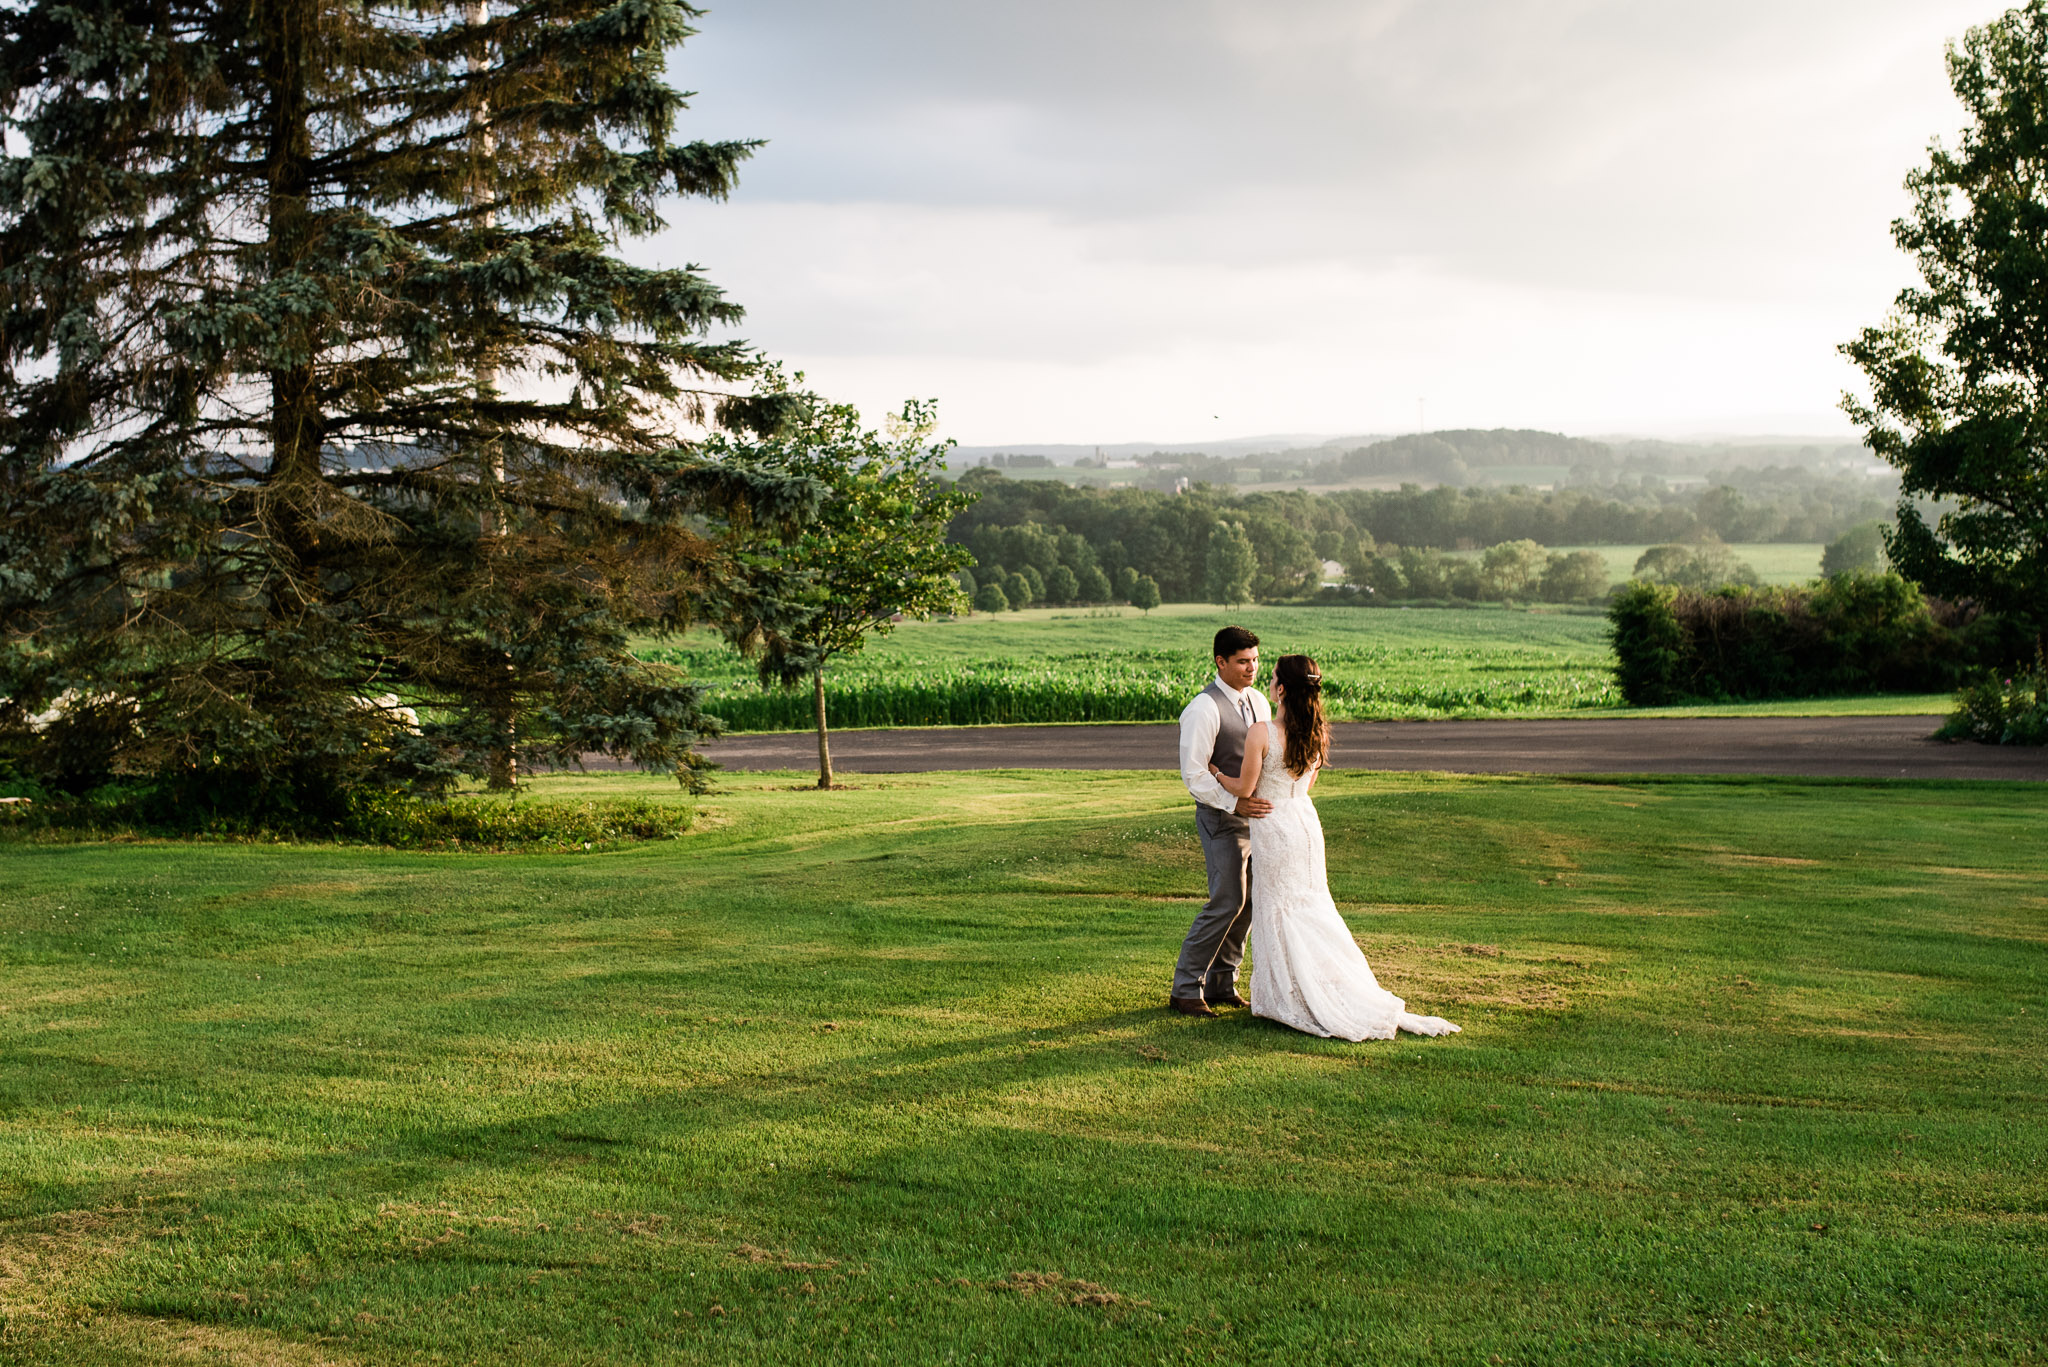 Sunset Wedding Portraits, Pittsburgh Wedding Photographer, The Event Barn at Highland Farms, Somerset PA-4114.jpg